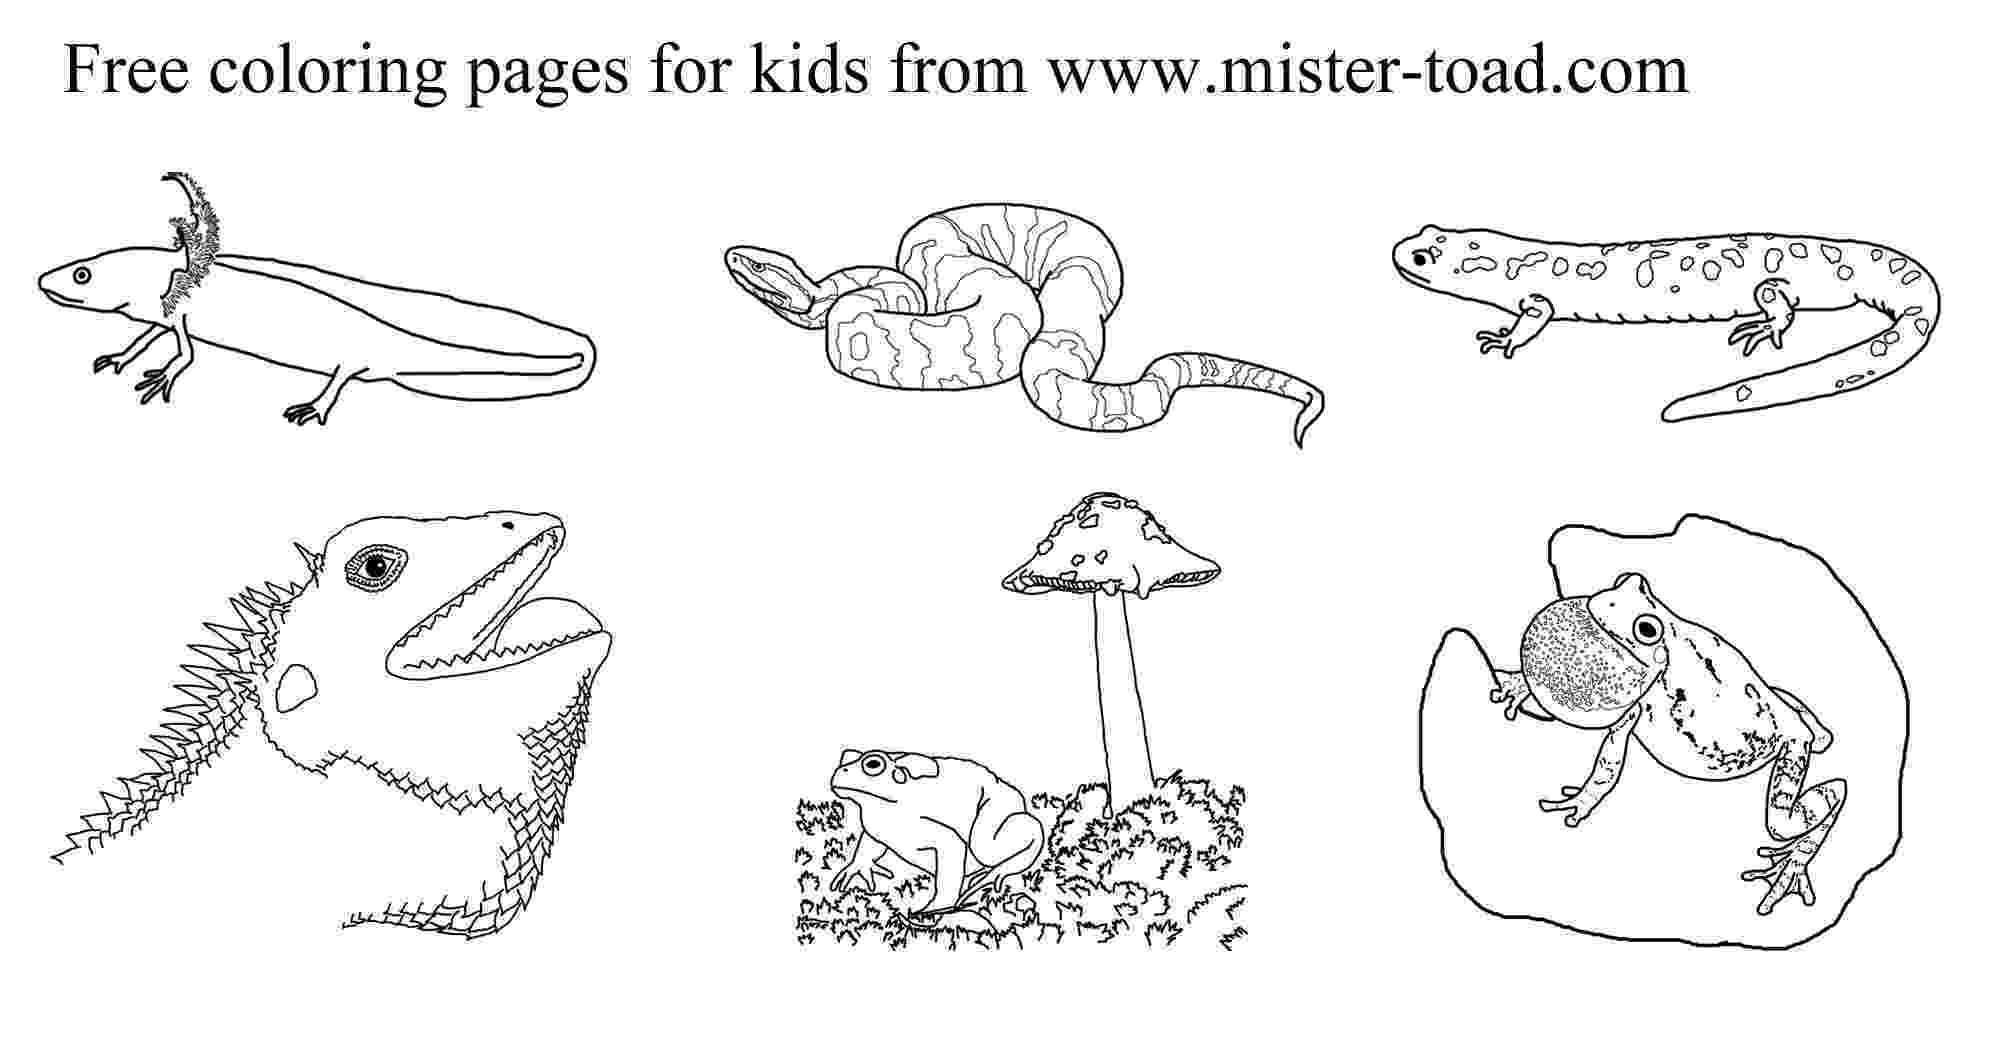 amphibian coloring pages amphibian and reptile coloring pages coloring amphibian pages